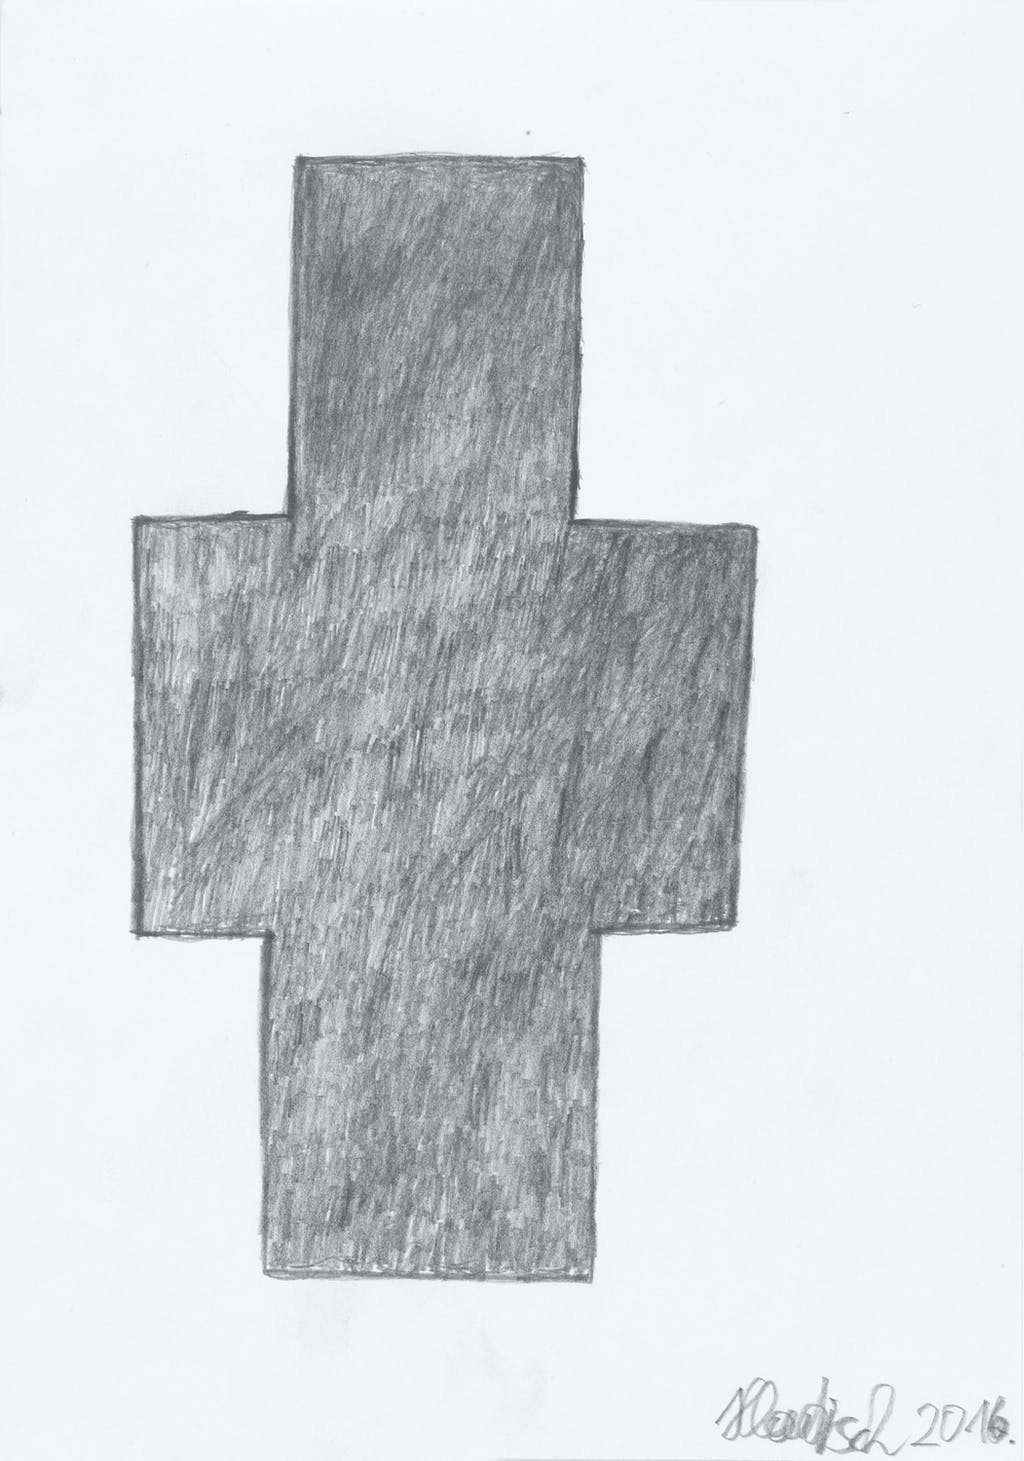 Cross, 2016. graphite sur papier, 21.4 x 15.1 cm - © christian berst — art brut